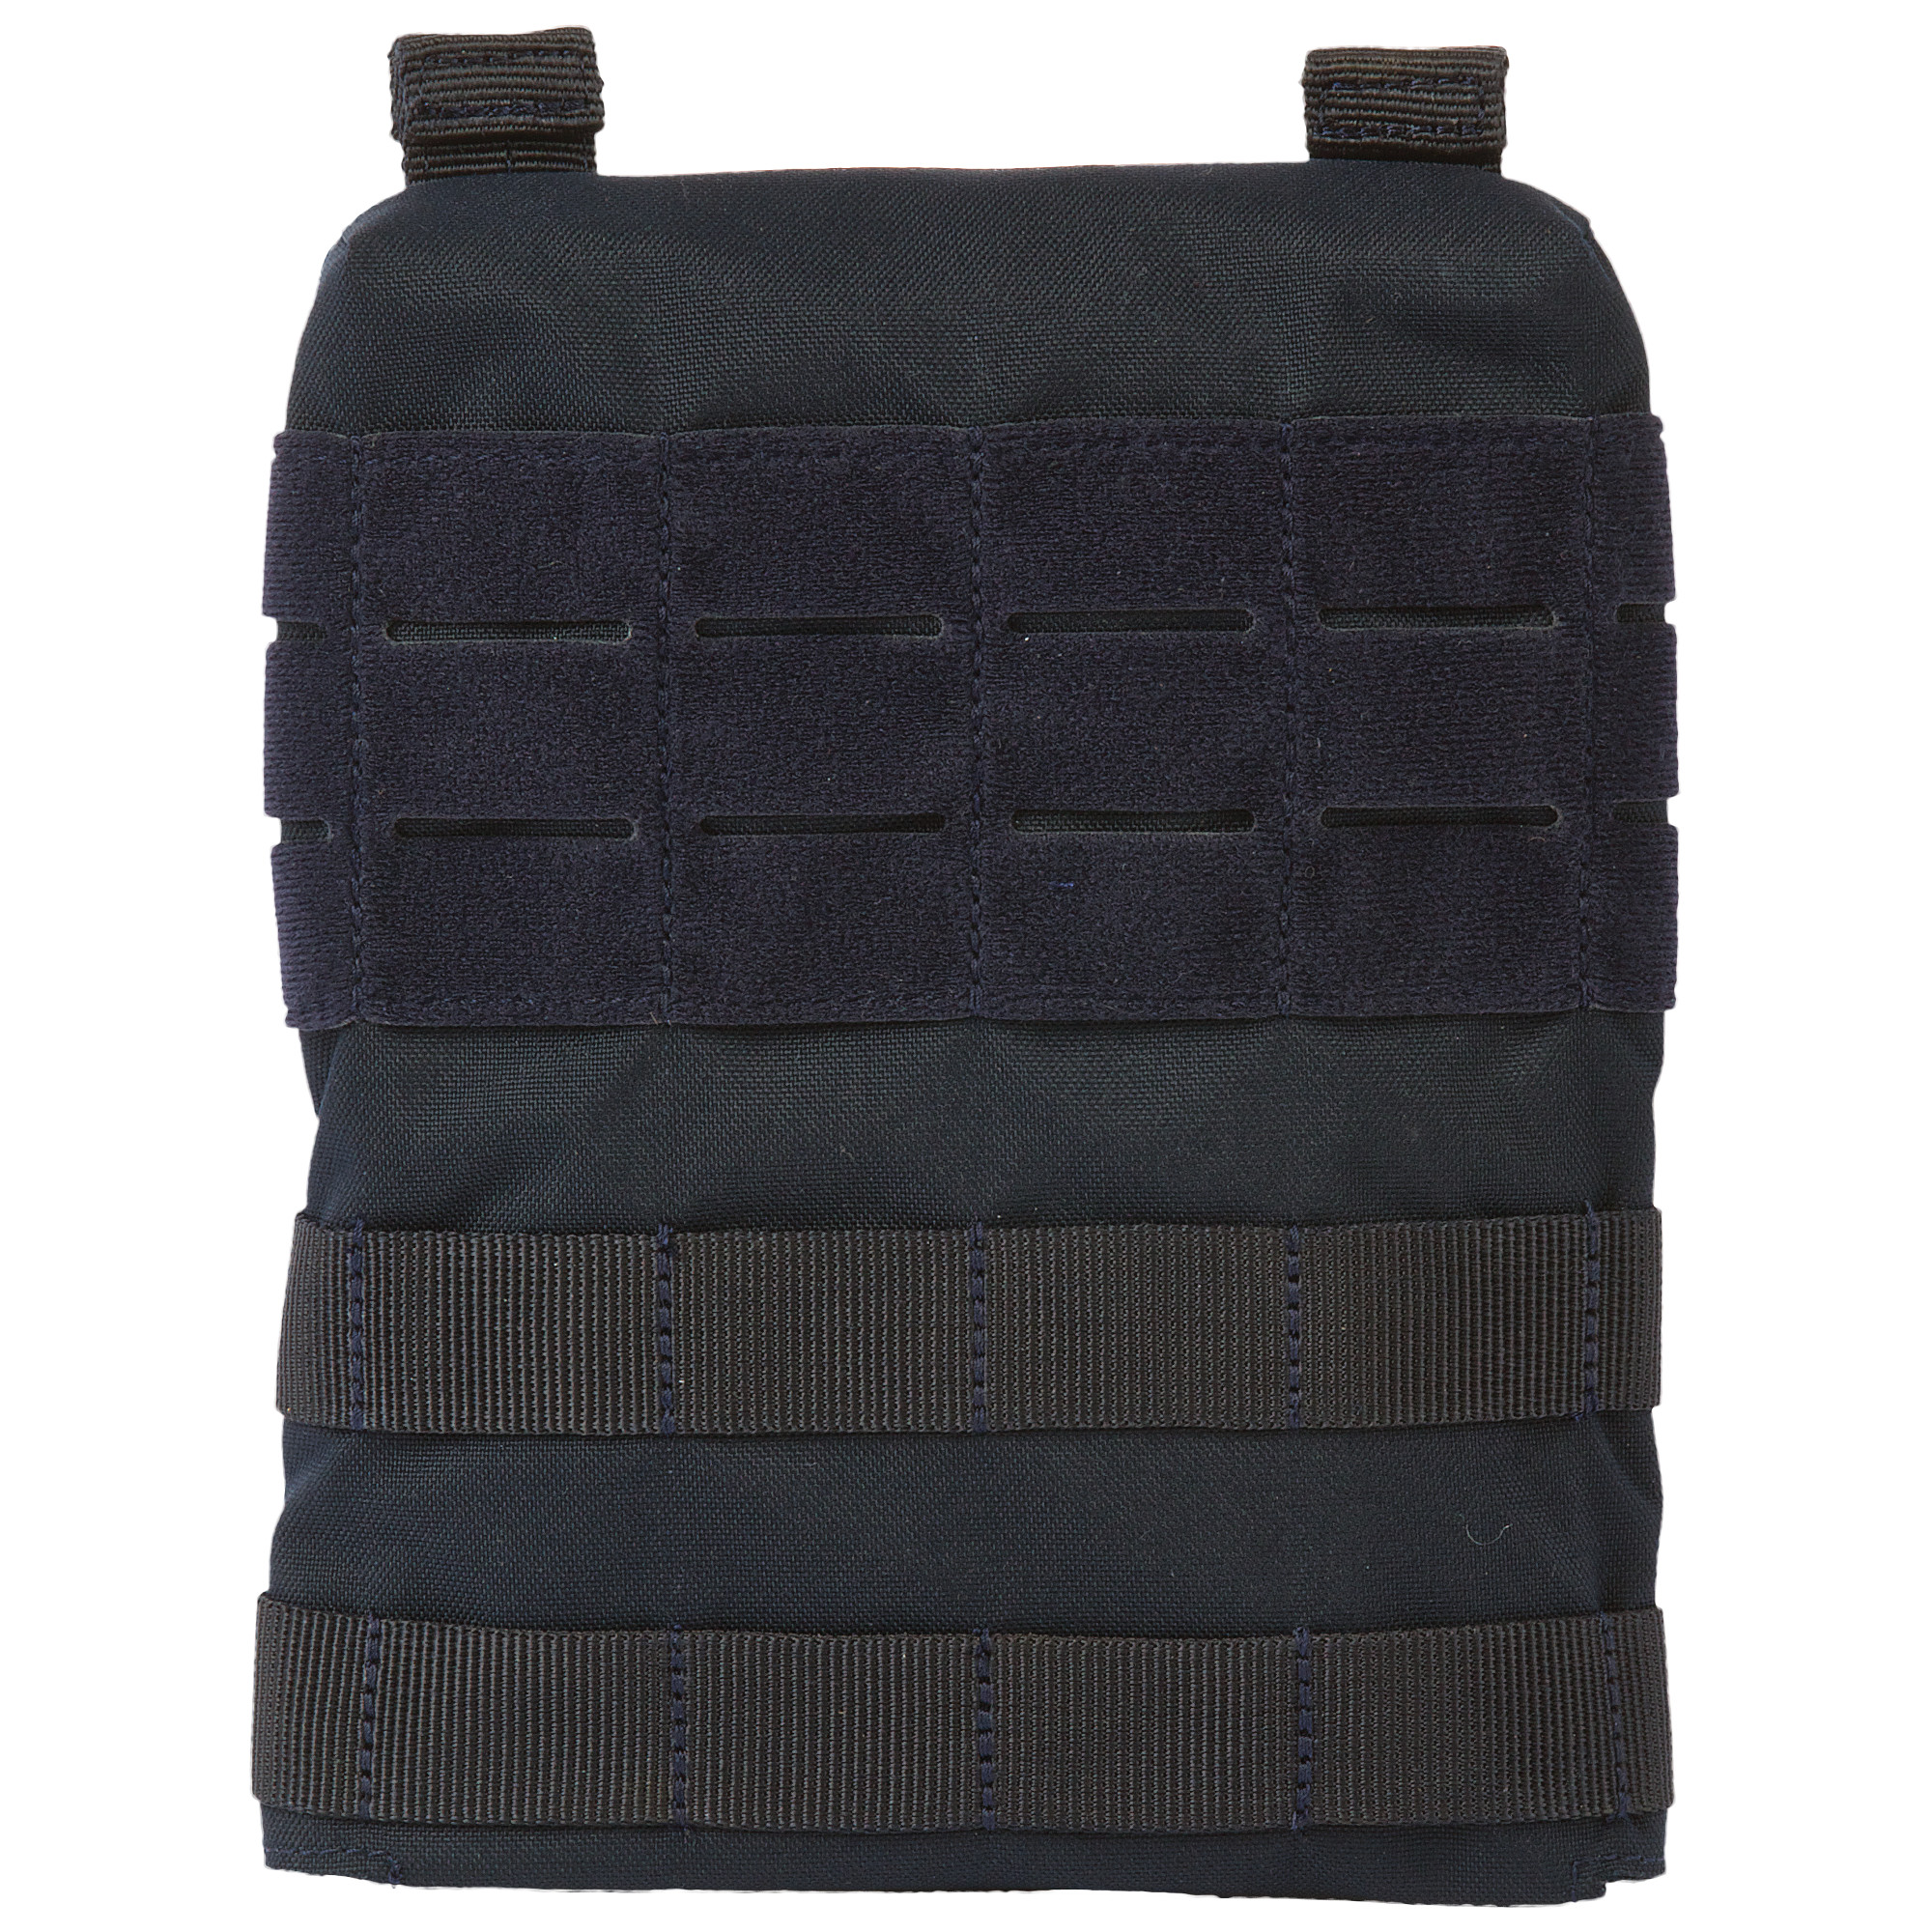 68759b1ce6ff1 image of TacTec Plate Carrier Side Panels with sku 844802367035